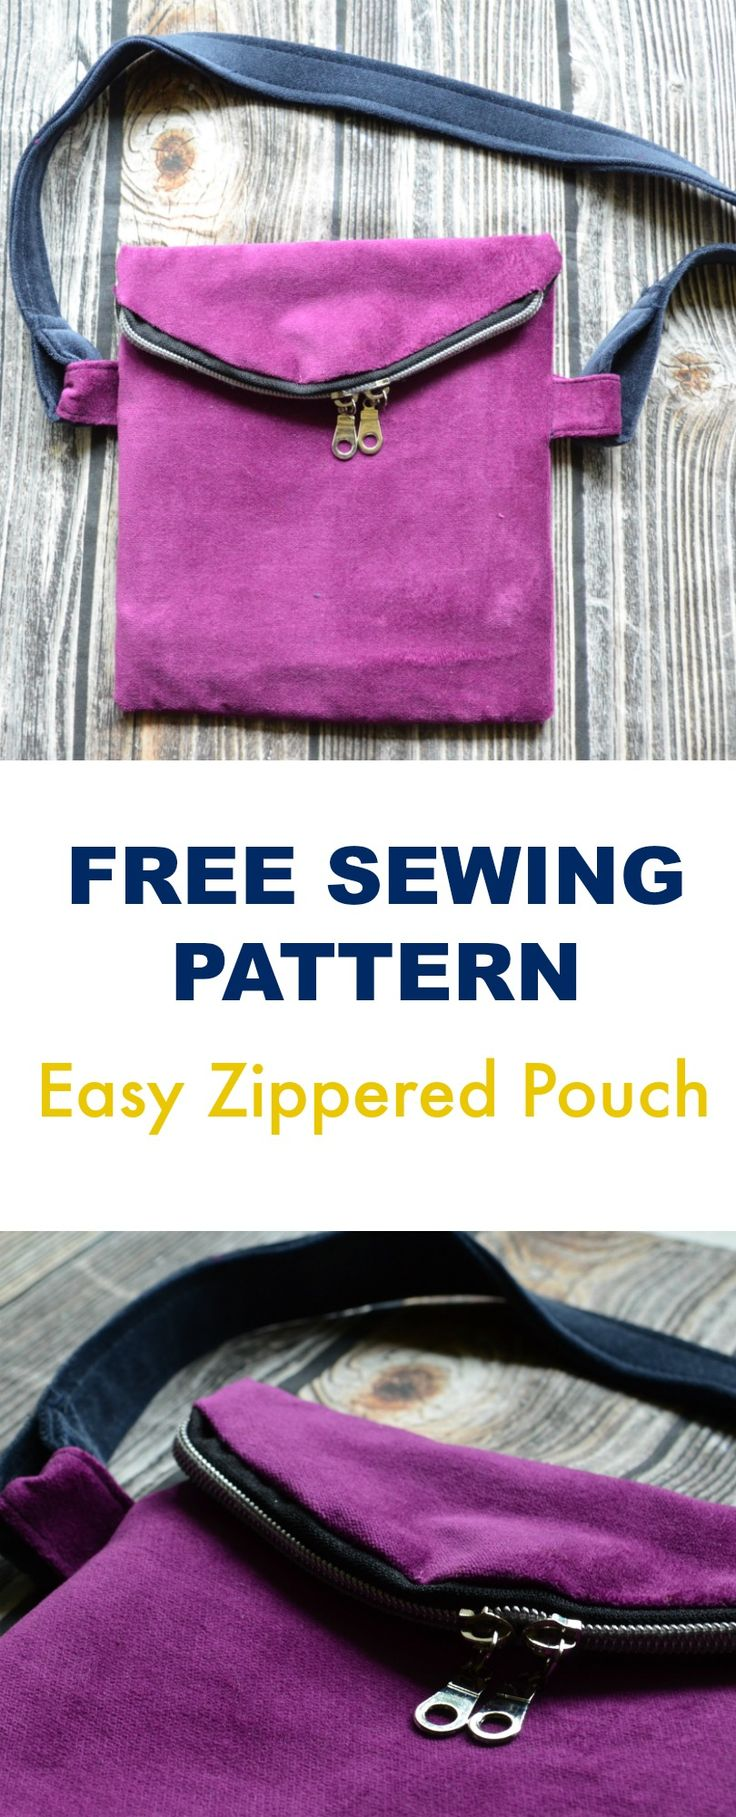 FREE SEWING PATTERN: Easy Zippered Pouch: Learn how to make a basic and simple zippered pouch with this step by step sewing tutorial